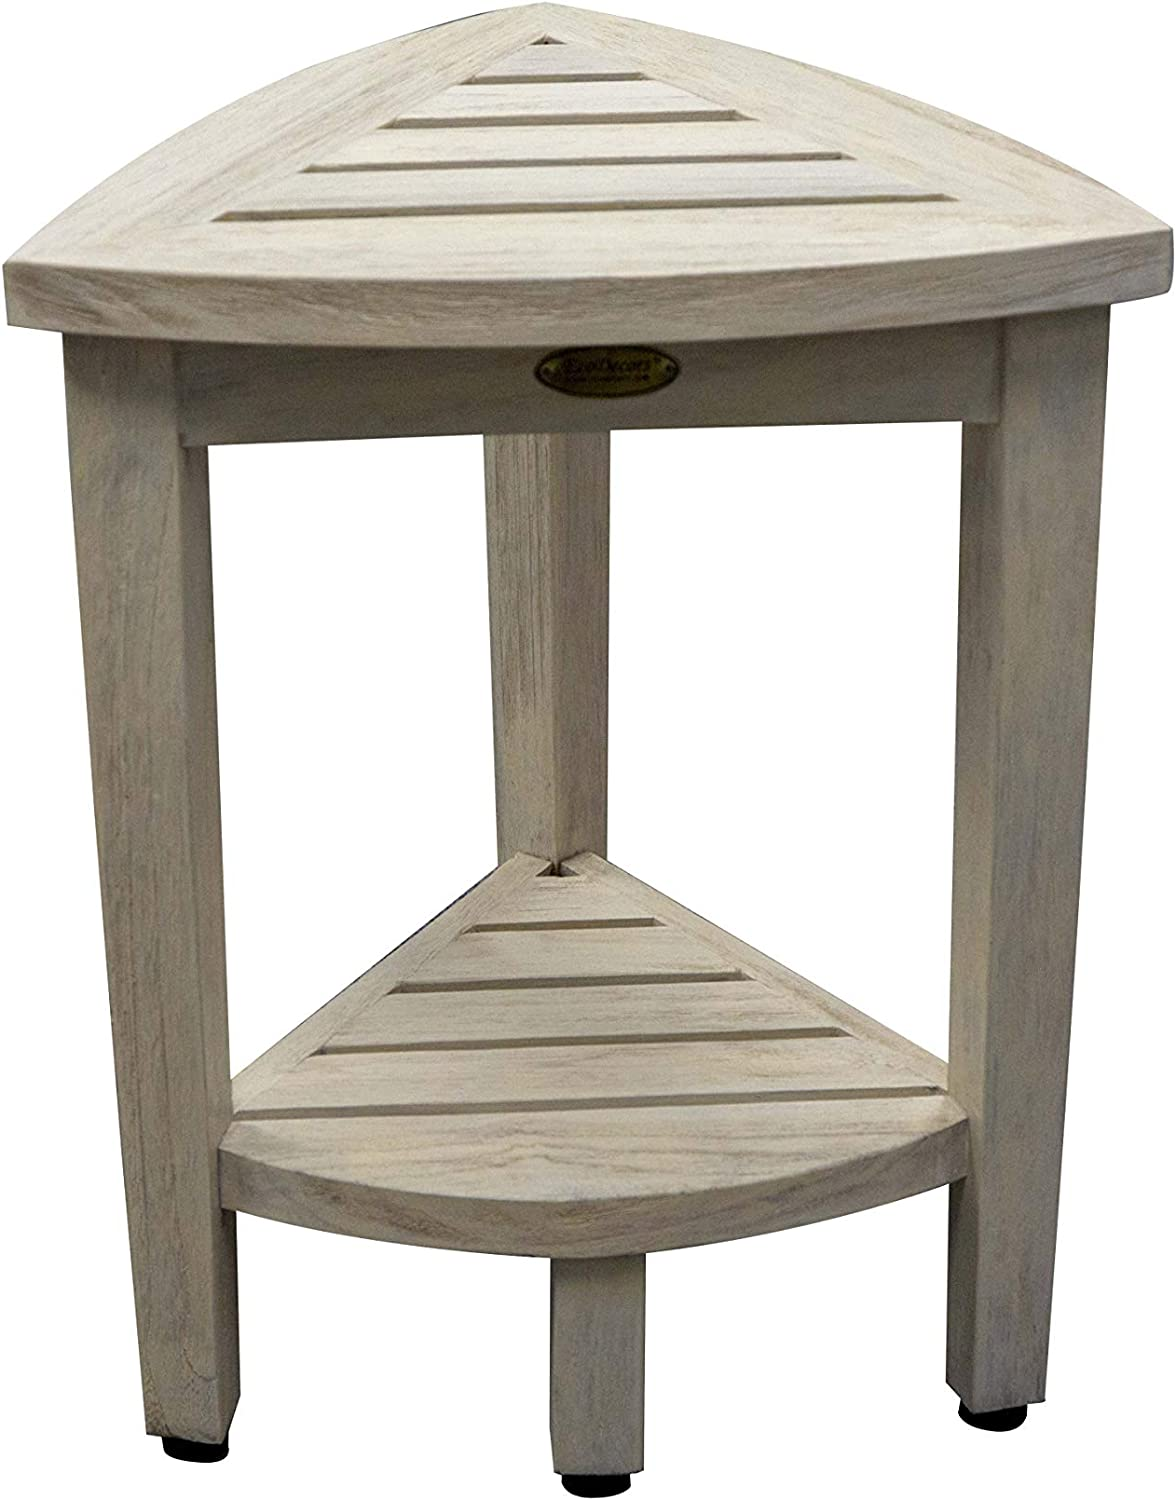 CoastalVogue Oasis Shower Stool, Driftwood